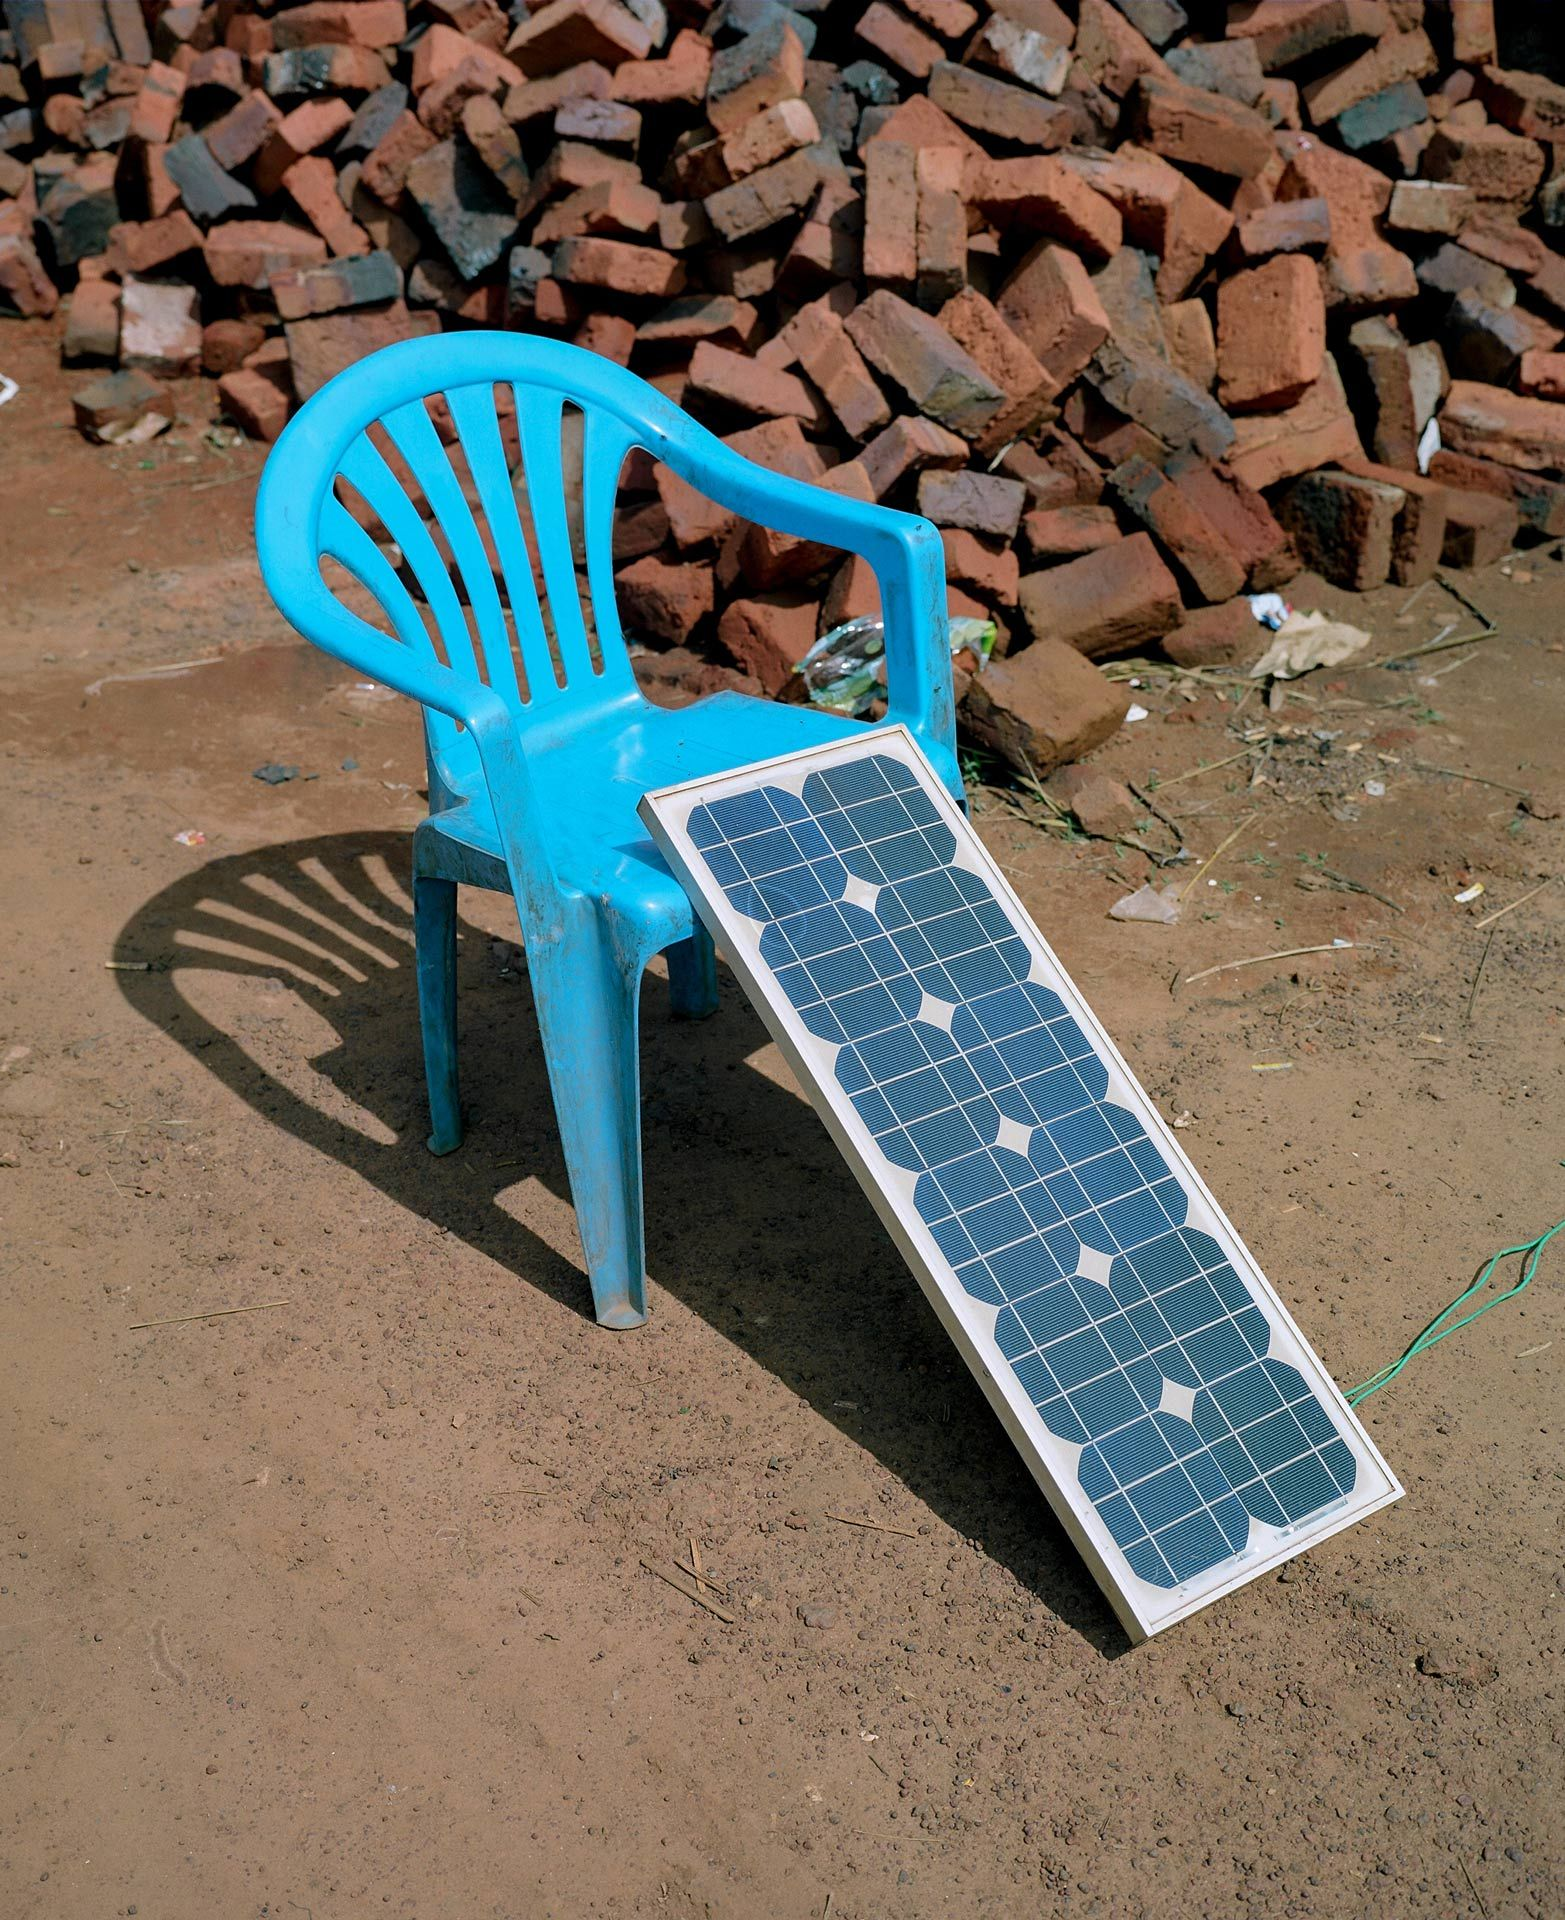 blue plastic chair supporting a transportable solar panel while its recharging by Alexi Hobbs in Uganda for Football for Good with Sportsnet